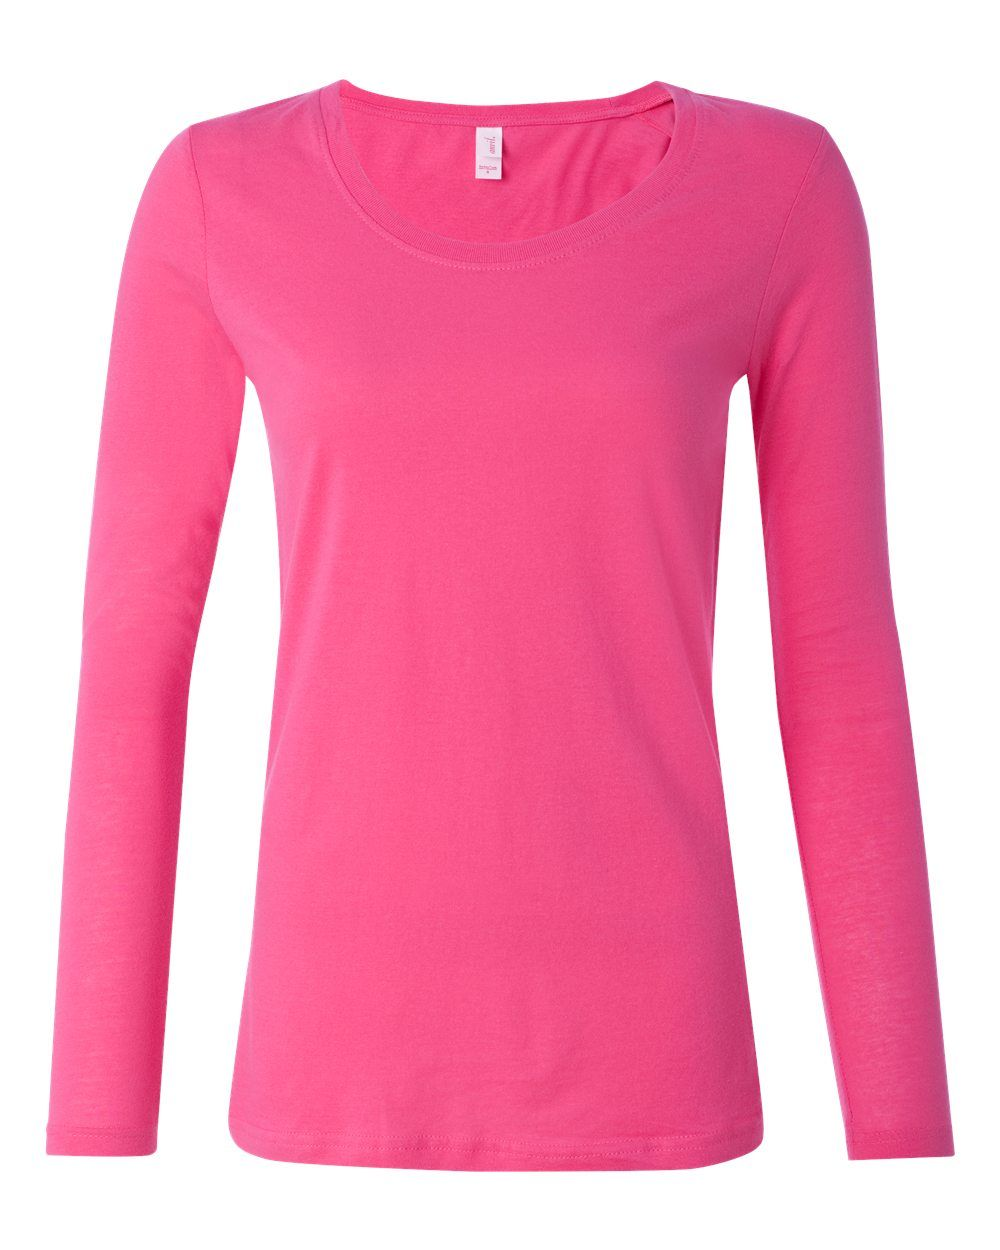 Anvil Hot Pink Ladies Semi Sheer Long Sleeve Scoopneck T